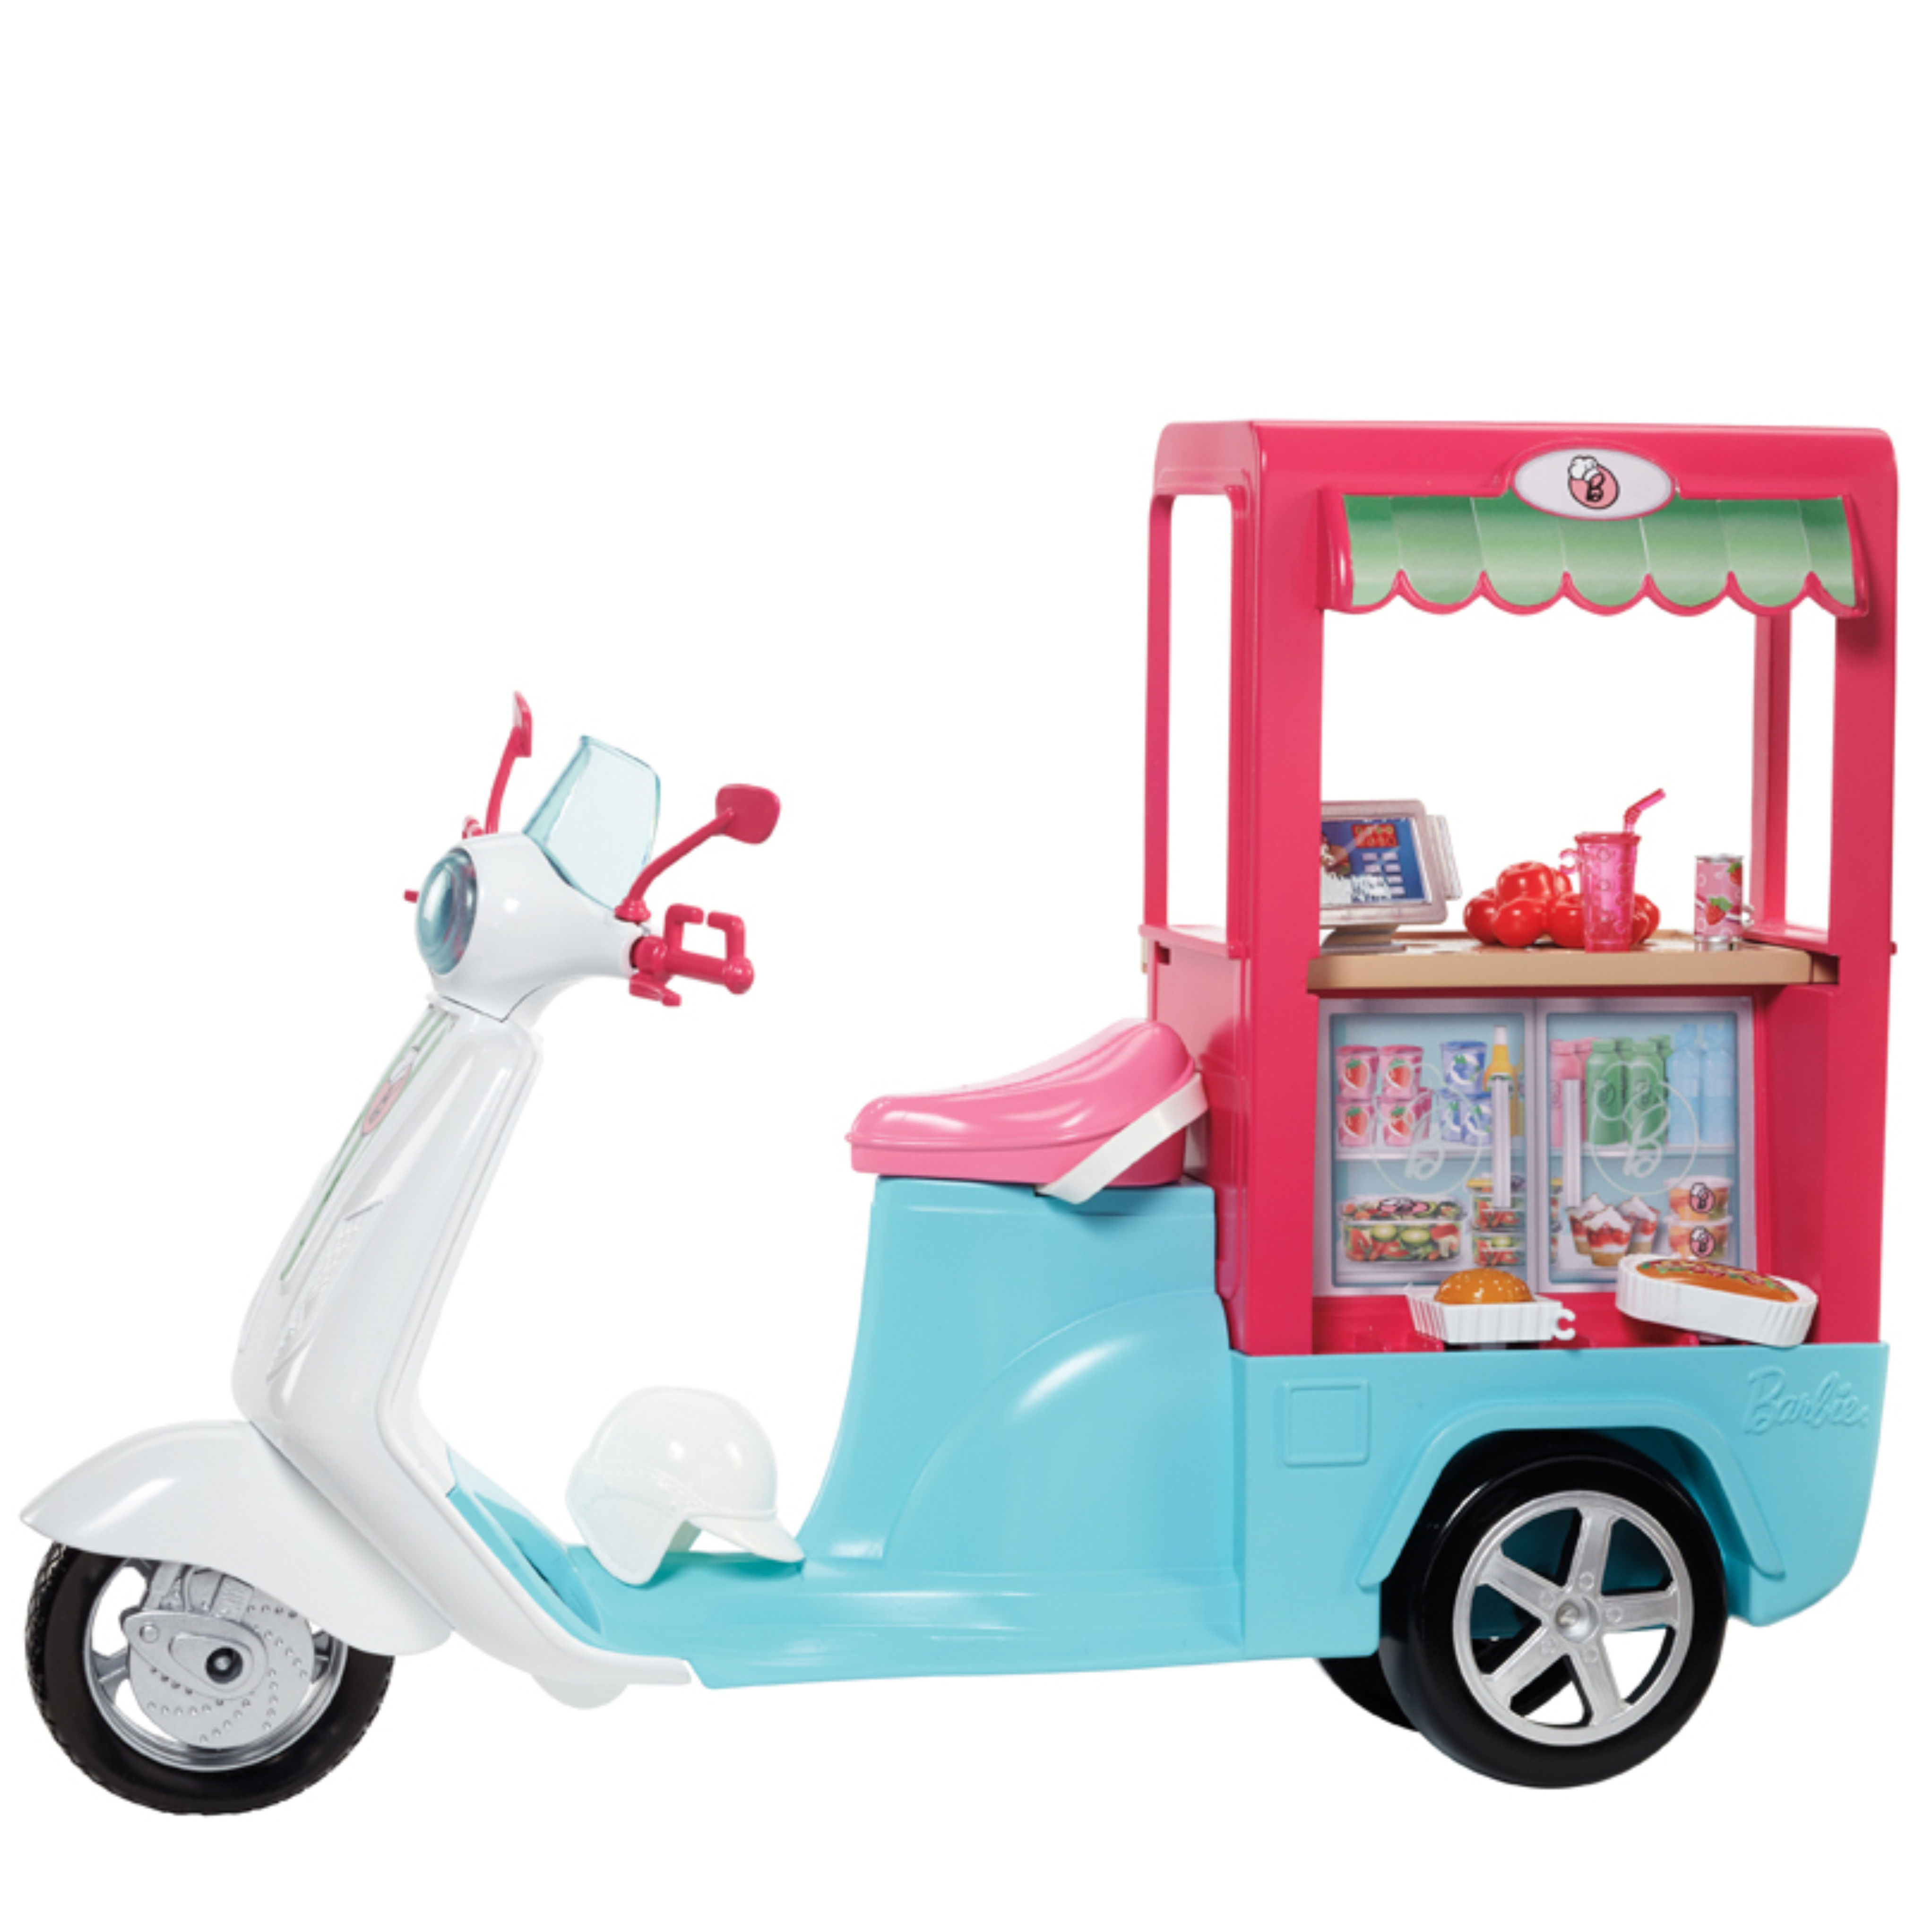 Barbie Bistro Scooter|Play Set With Accessories|Creative Activity Toy For Kids|